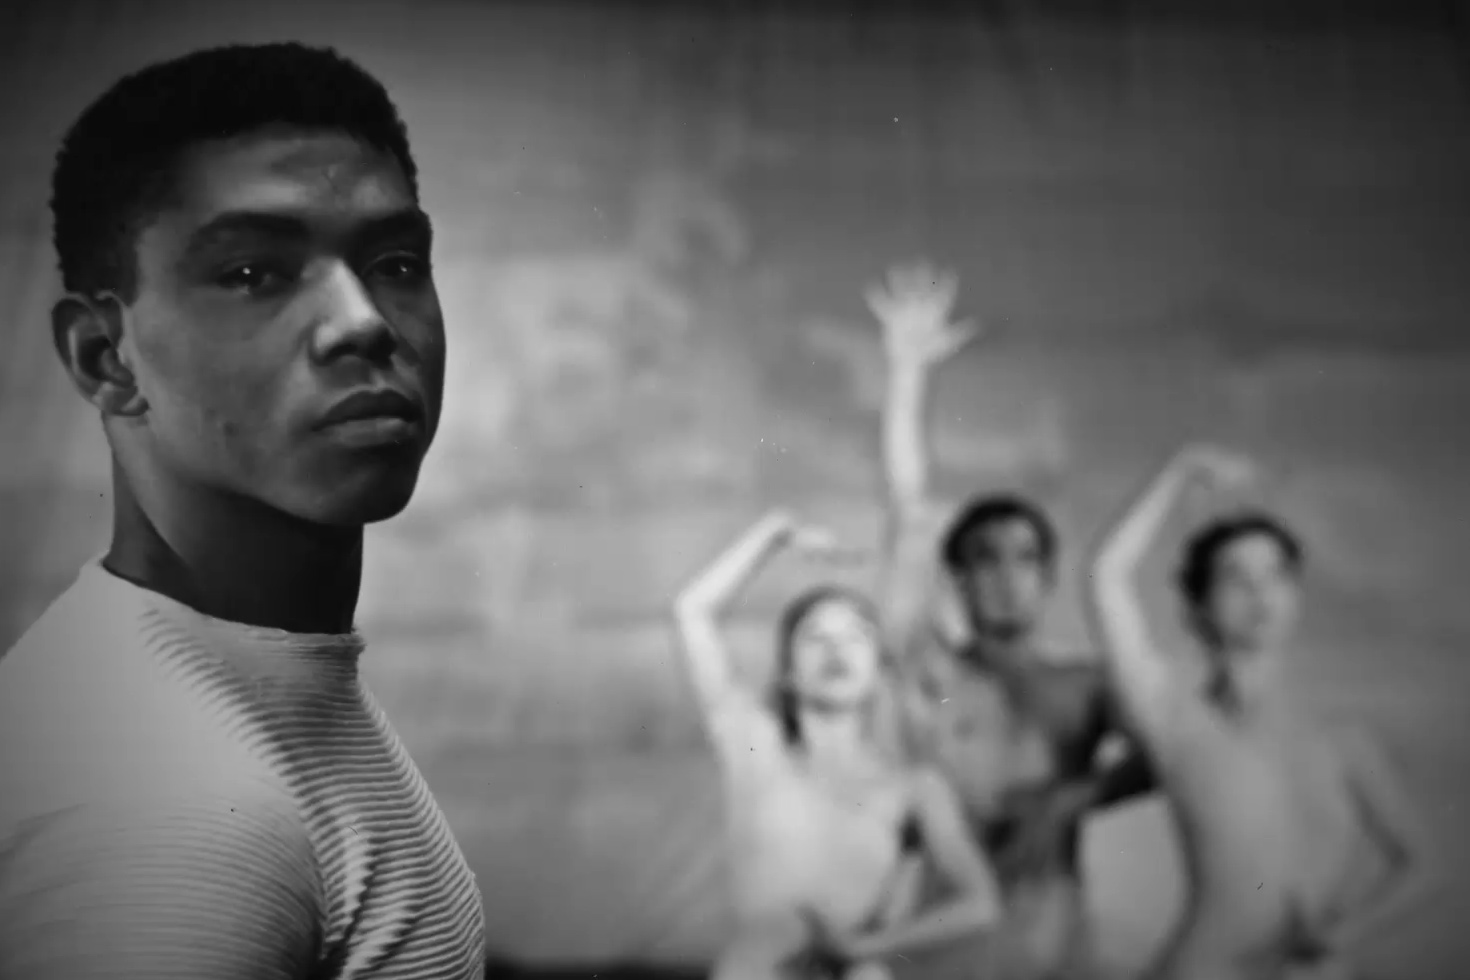 Black-and-white image of a young Alvin Ailey. He is a Black man with short hair, wearing a white t-shirt. Behind him are three dancers. Image from Jamila Wignot's 'Ailey.' Courtesy of NEON.